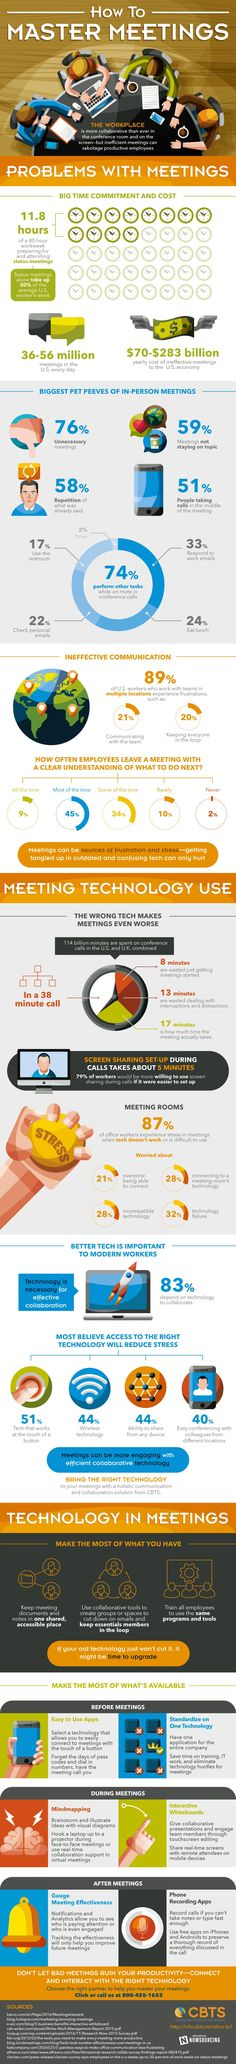 How to Master Meetings #Infographic #HowTo #Meetings